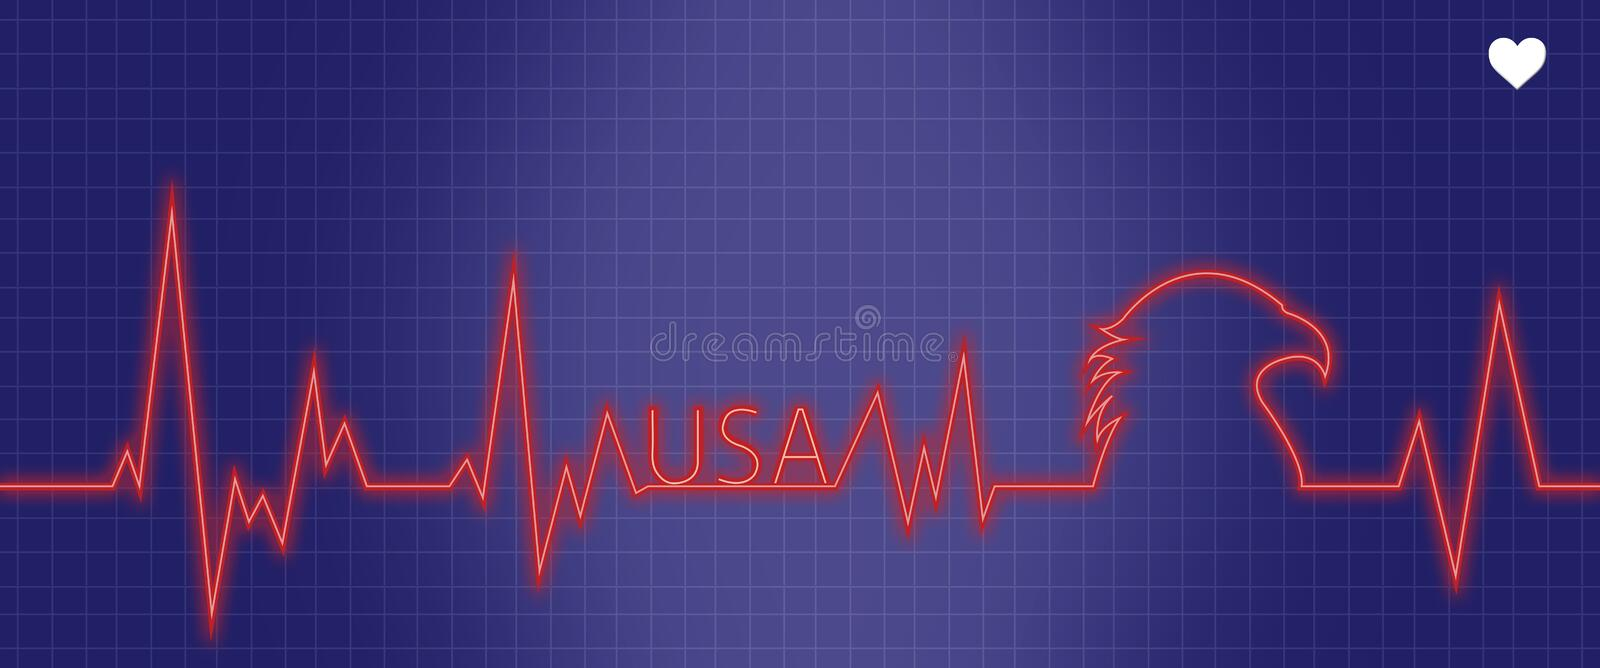 Medical EKG Heart Monitor With USA Theme stock illustration